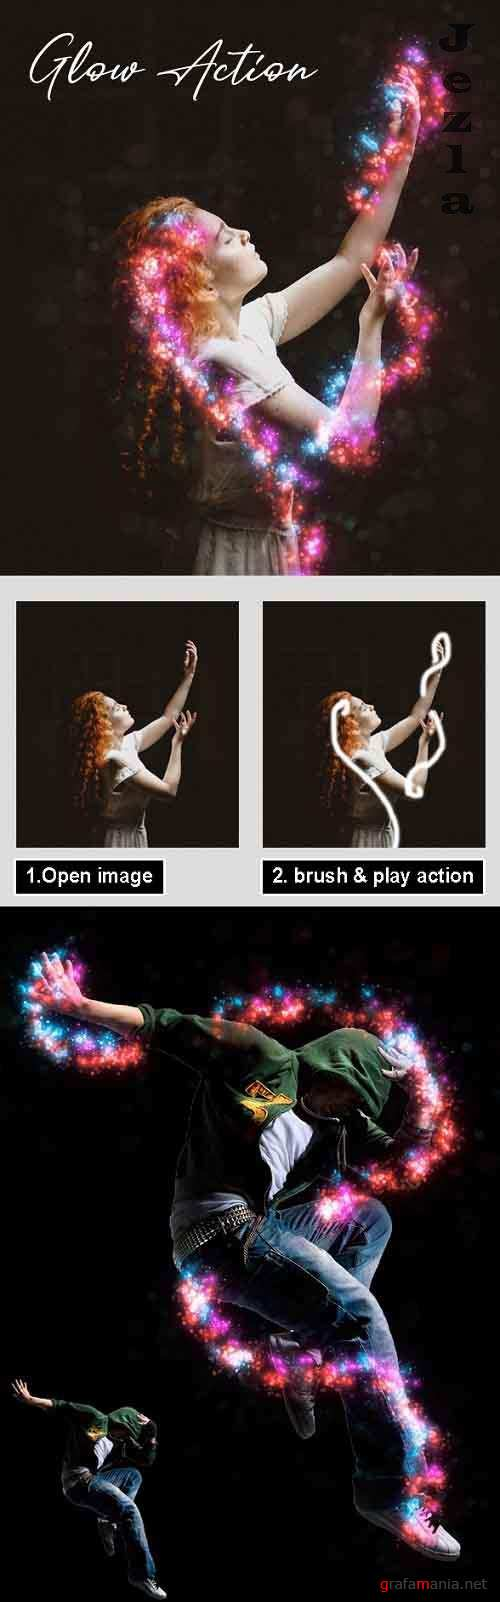 GraphicRiver - Glow Photoshop Action Vol 2 29783116